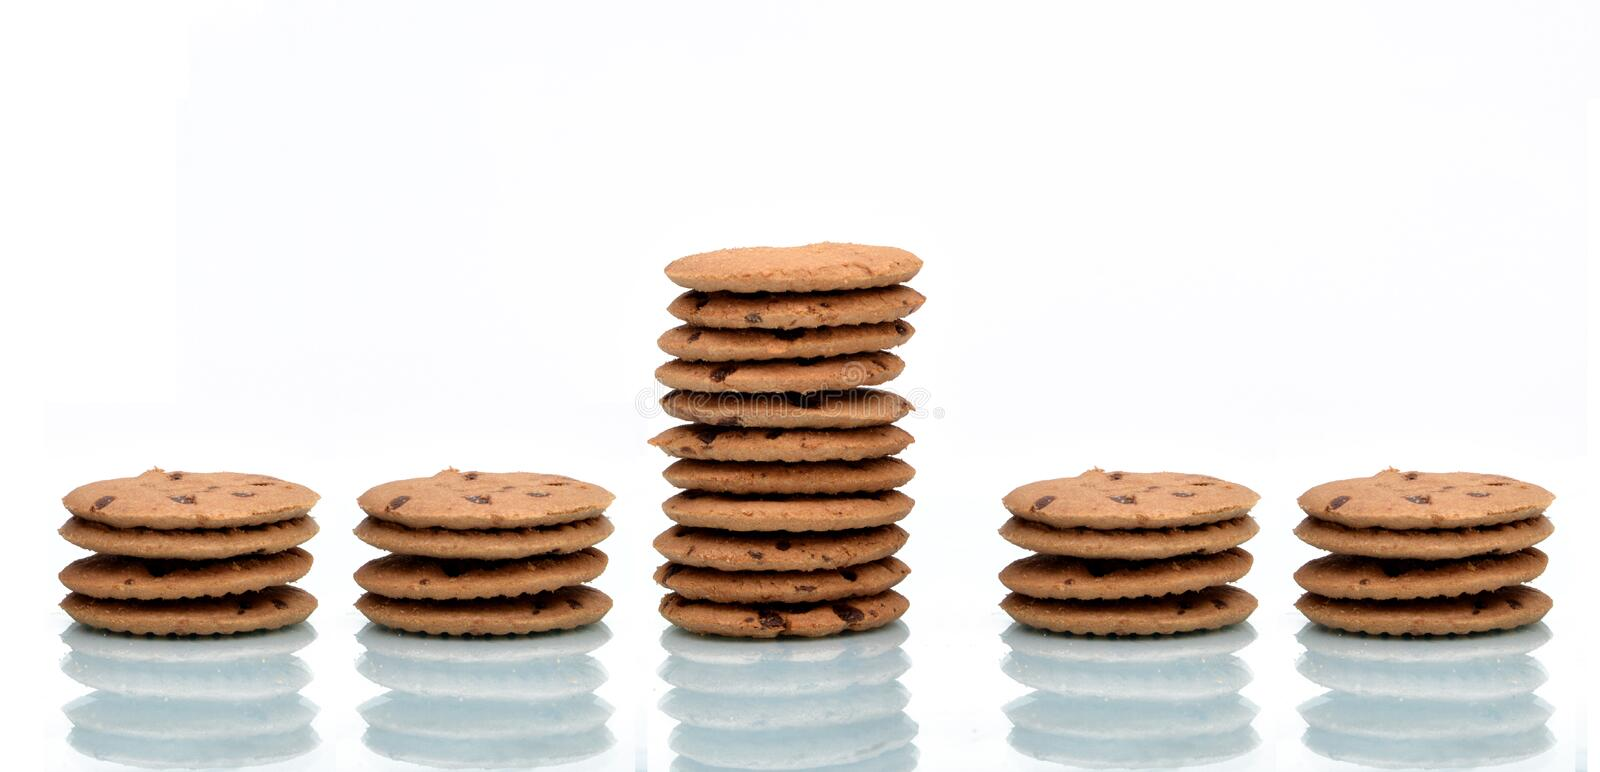 Stand out Concept using Chocolate Chip Cookies.  royalty free stock photos